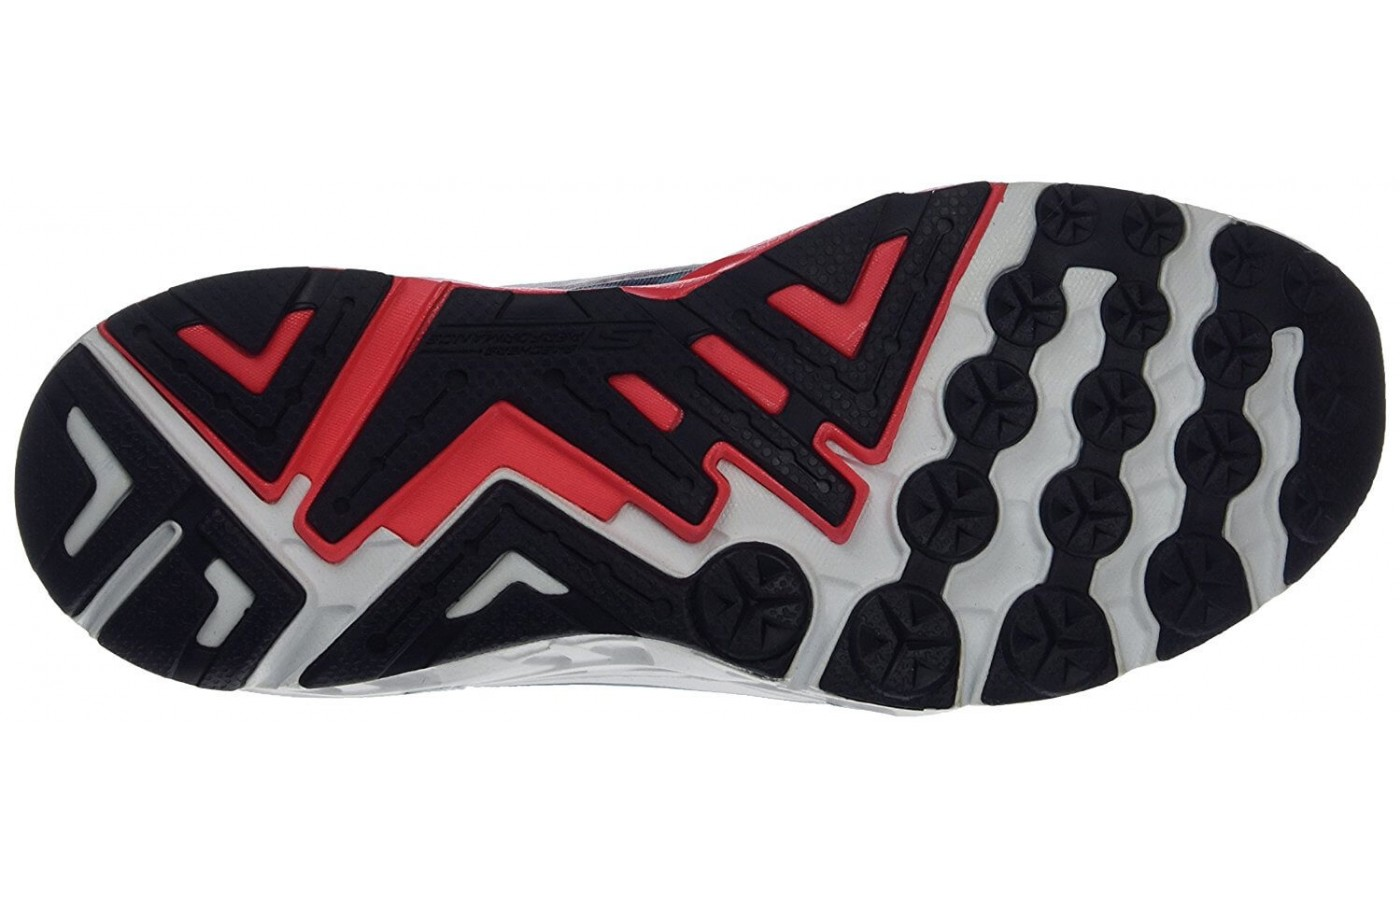 The Skechers GoRUN Forza 2 has a rubber outsole for traction